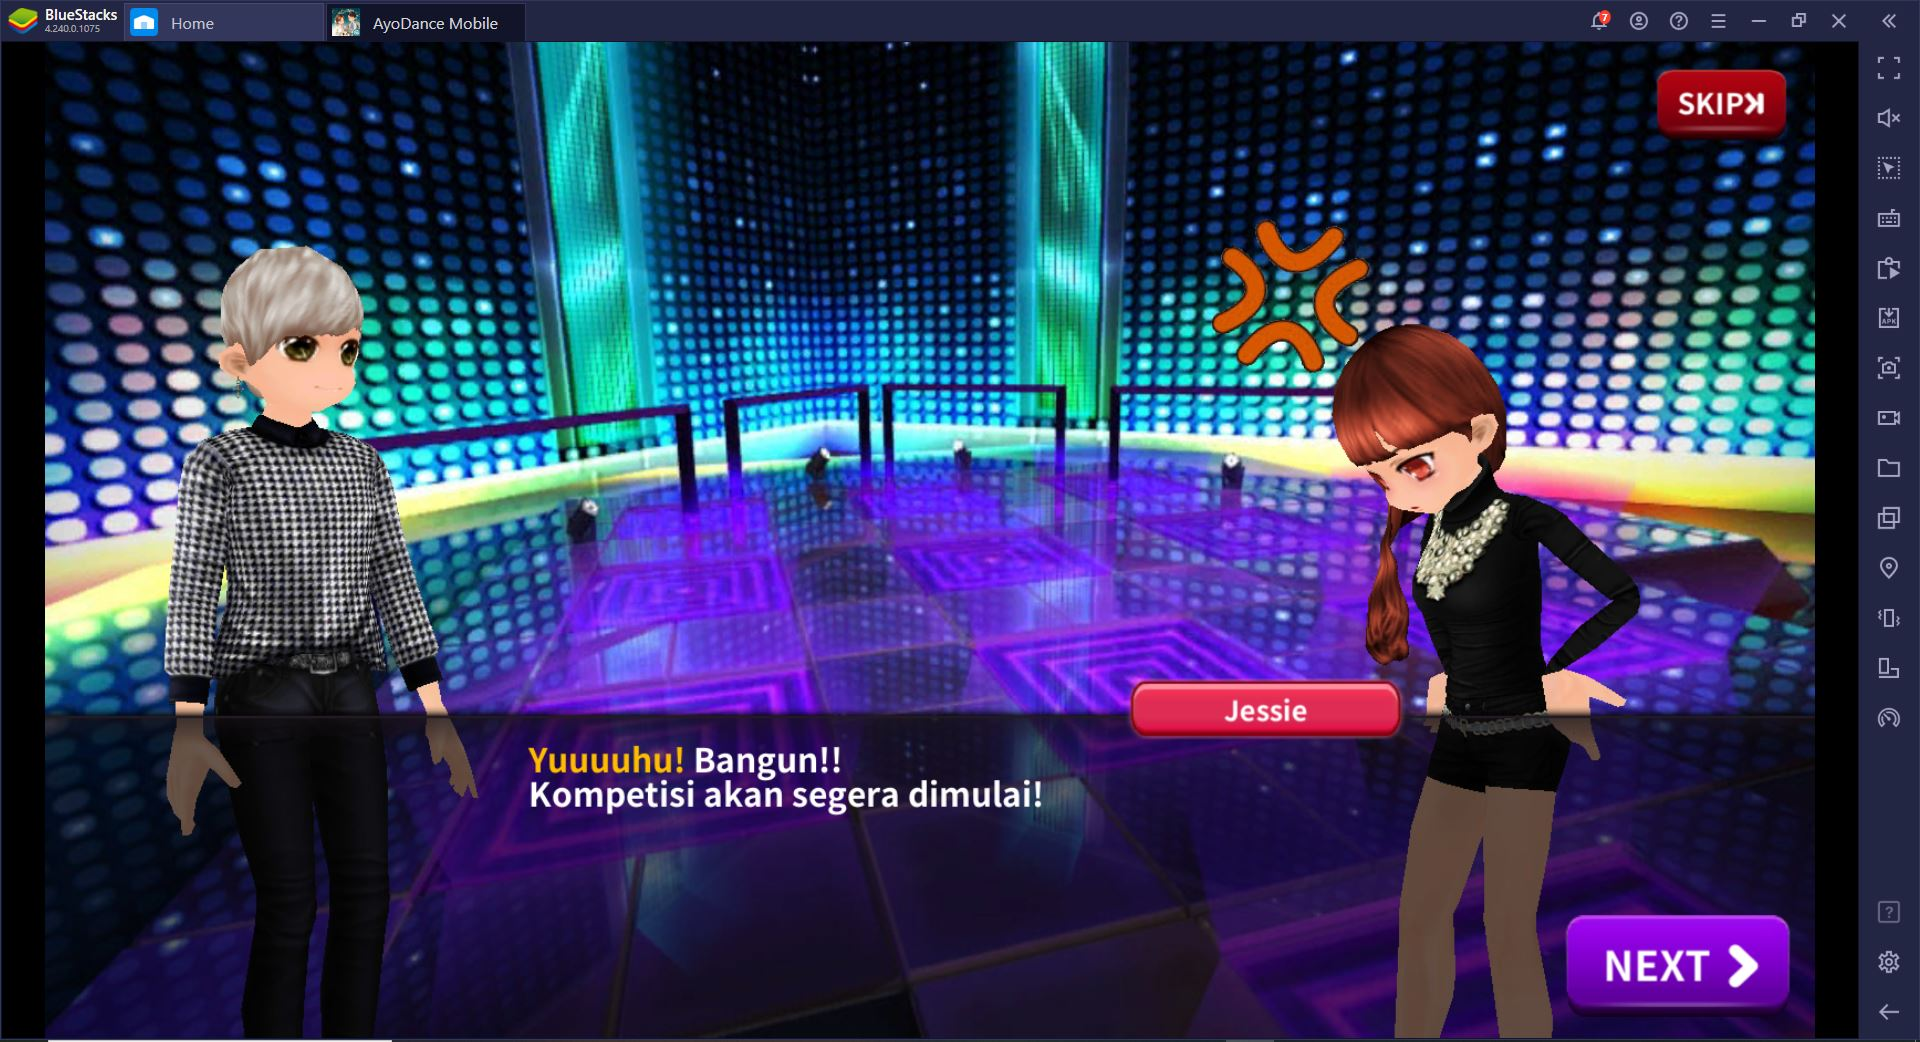 AyoDance Mobile – Tips Main AyoDance Mobile di BlueStacks, Auto PRO!